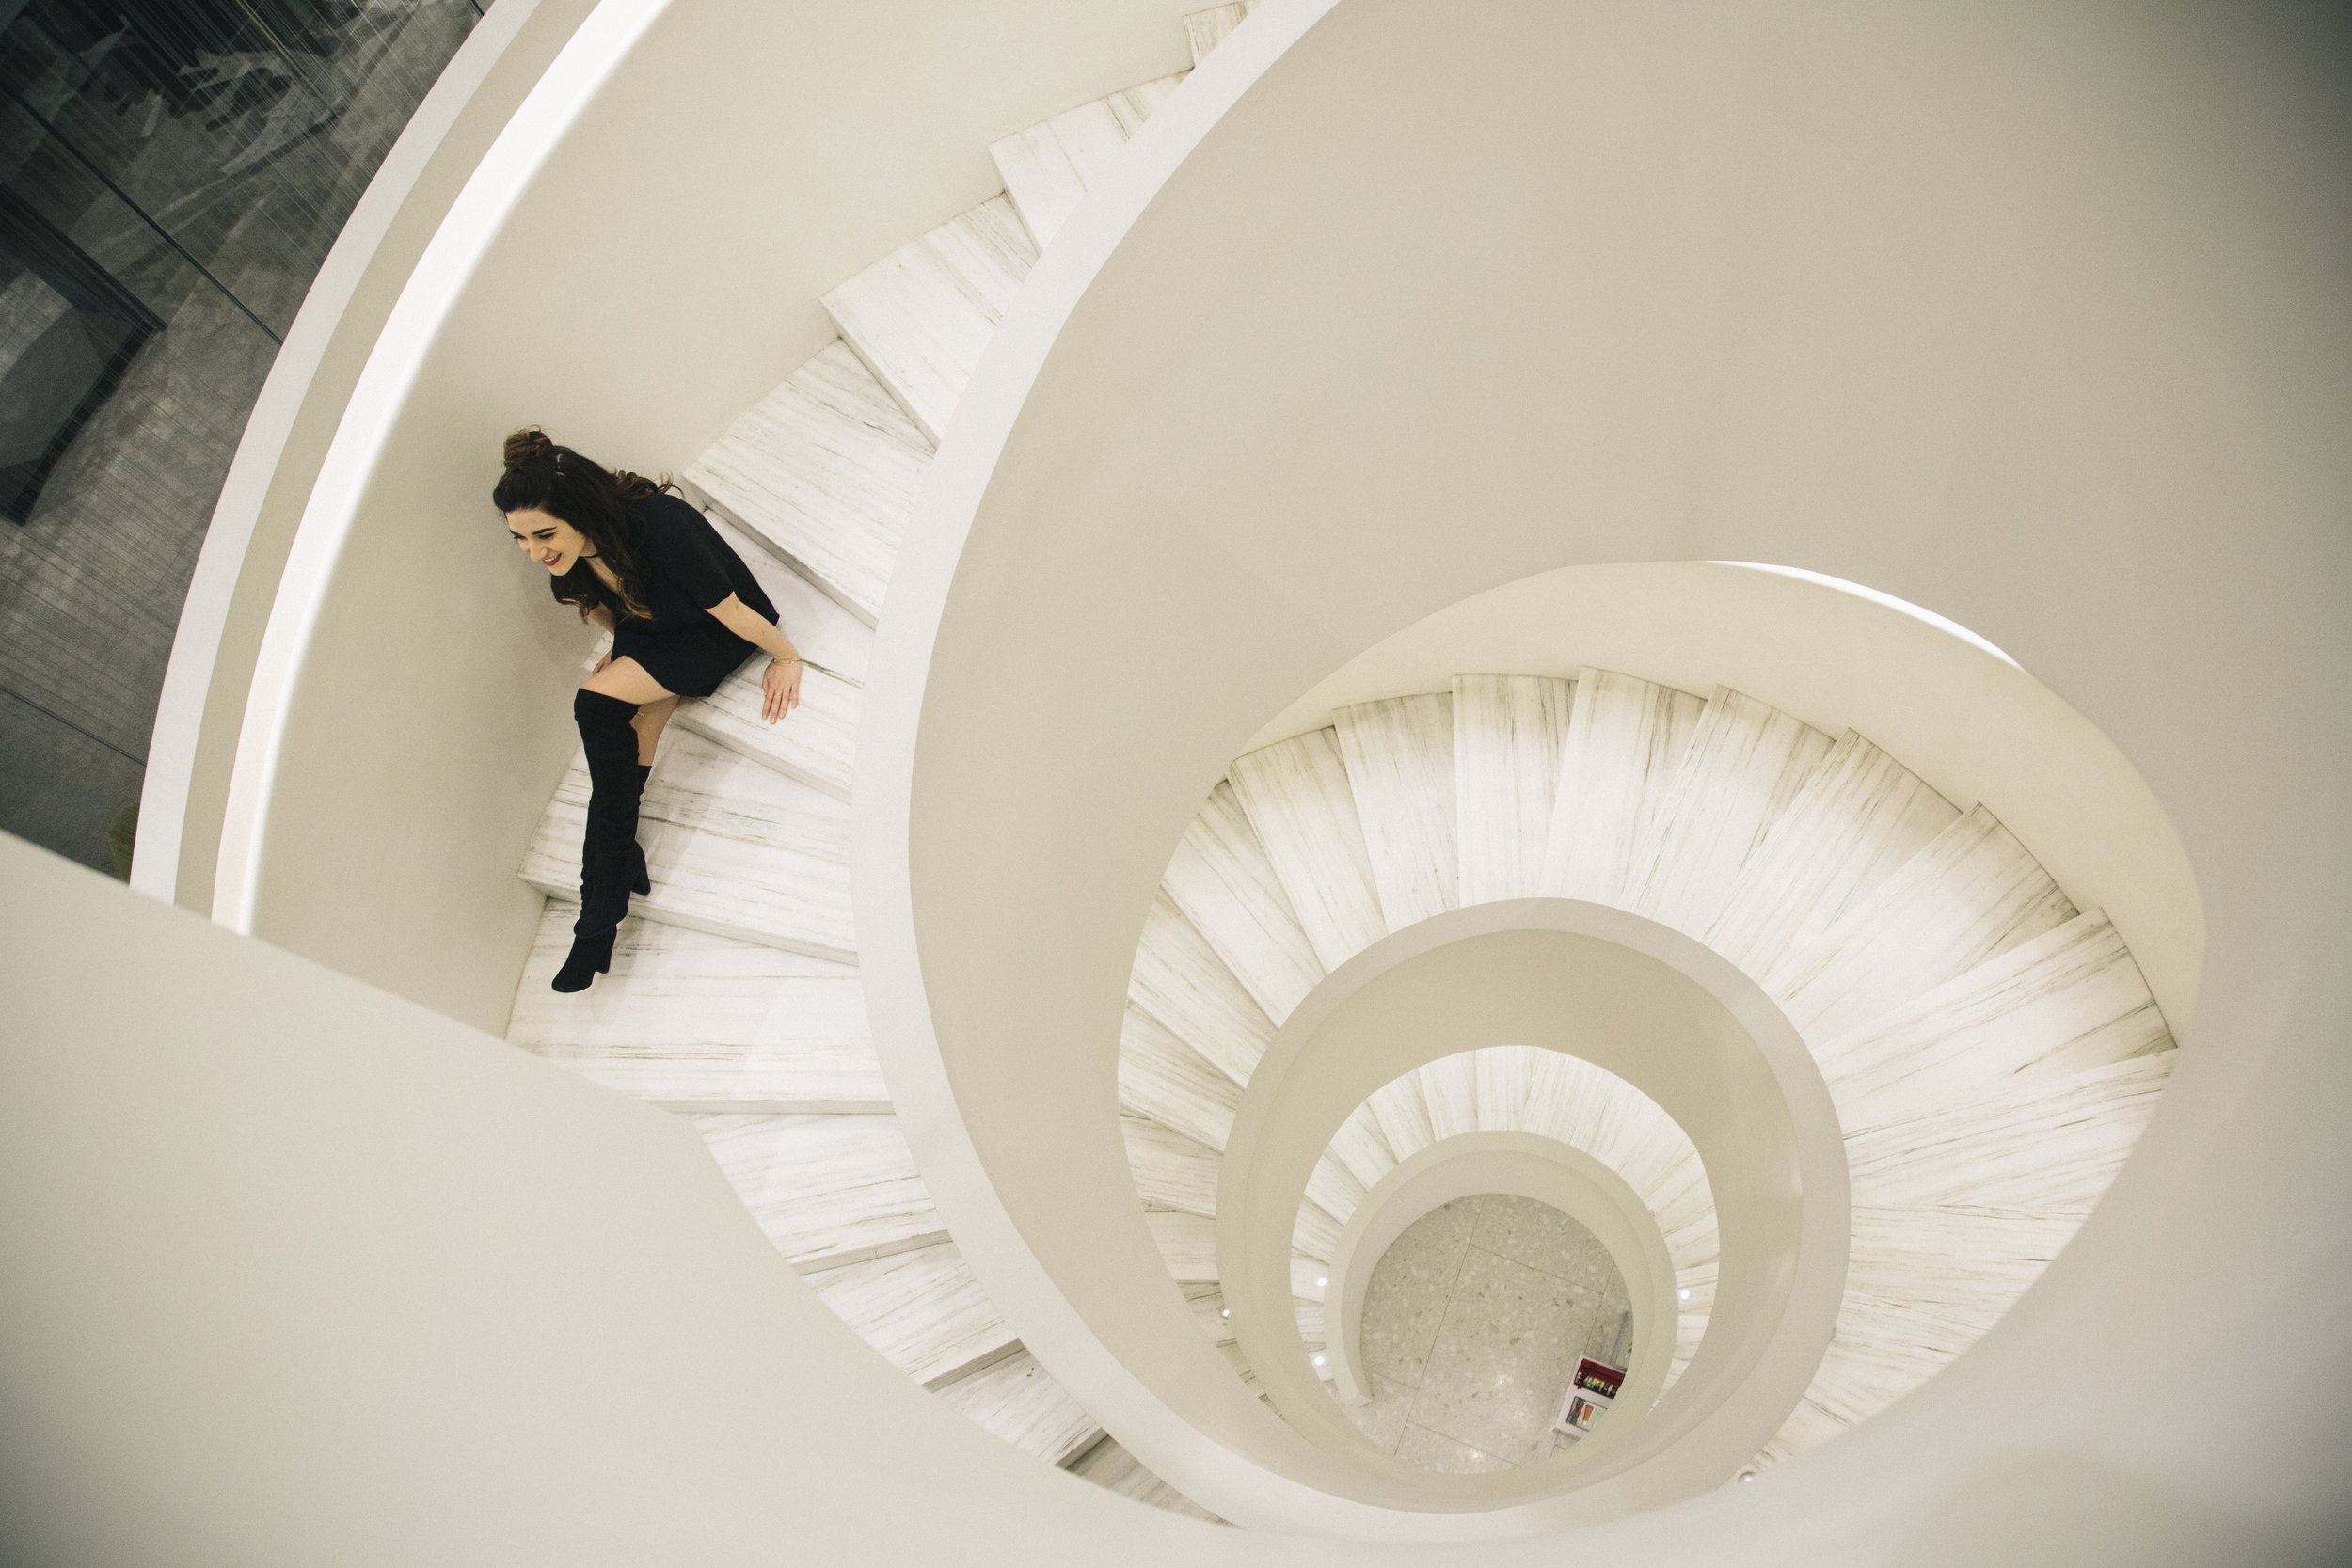 Down The Rabbit Hole All Black Look Louboutins & Love Fashion Blog Esther Santer NYC Street Style Blogger Outfit OOTD Trendy Barneys White Spiral Staircase Beautiful Photoshoot Boots Ivanka Trump Nordstrom Shopping Wear  Hair Topknot Girl Women Chic.jpg